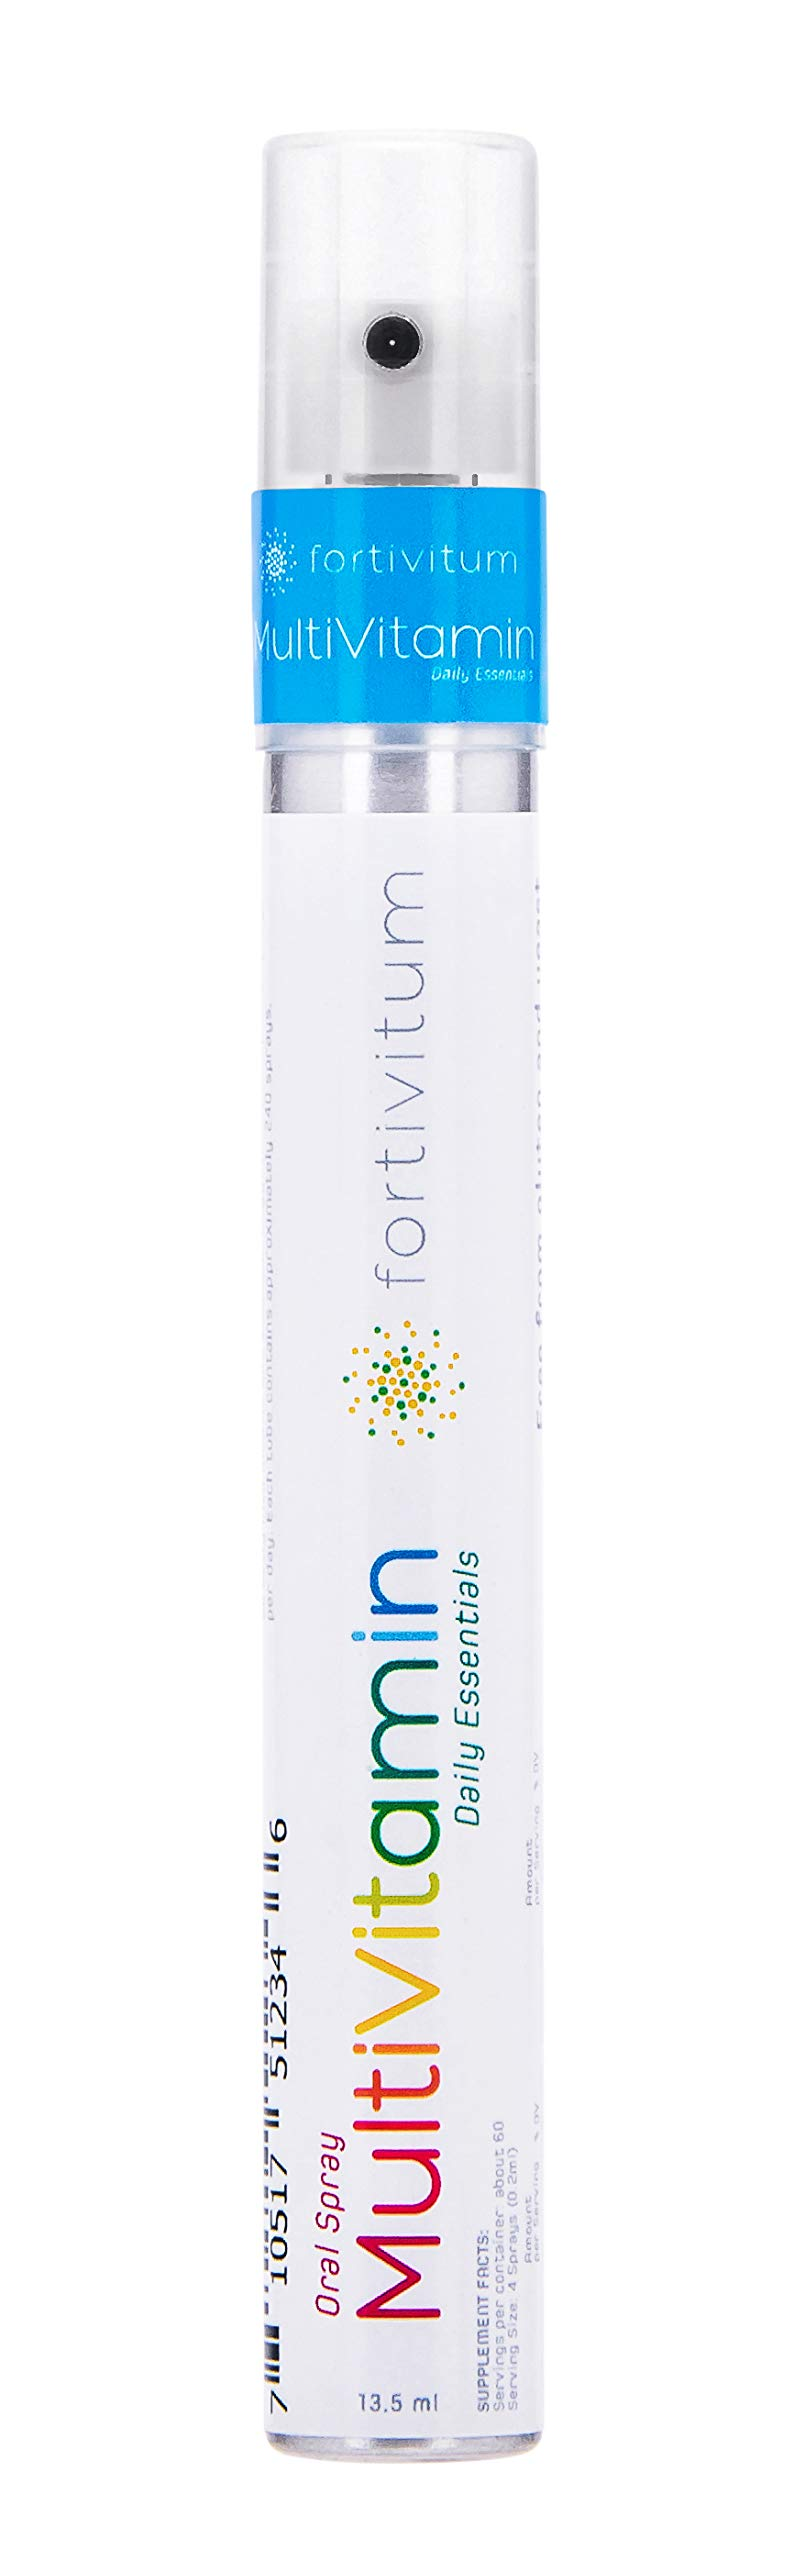 MultiVitamin Oral Spray by FortiVitum   Suitable for Men and Women   Naturally High Absorption Rate